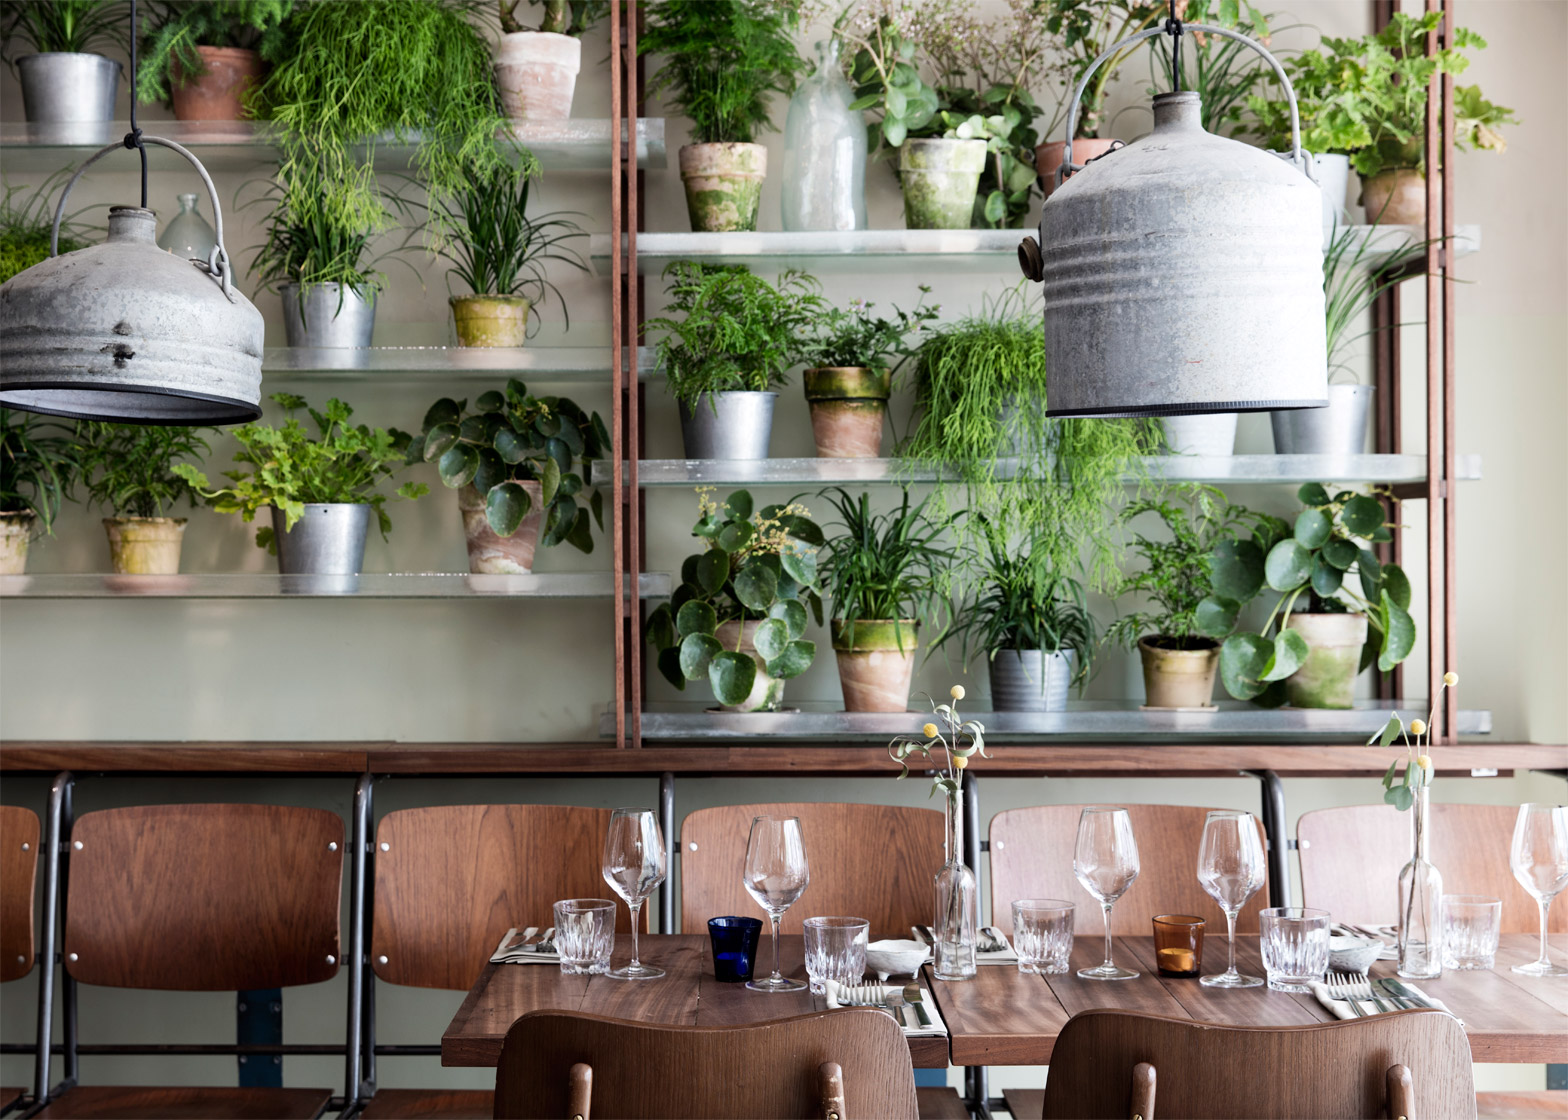 Restaurant Decoration Plant : Danish design studio creates an indoor garden for a